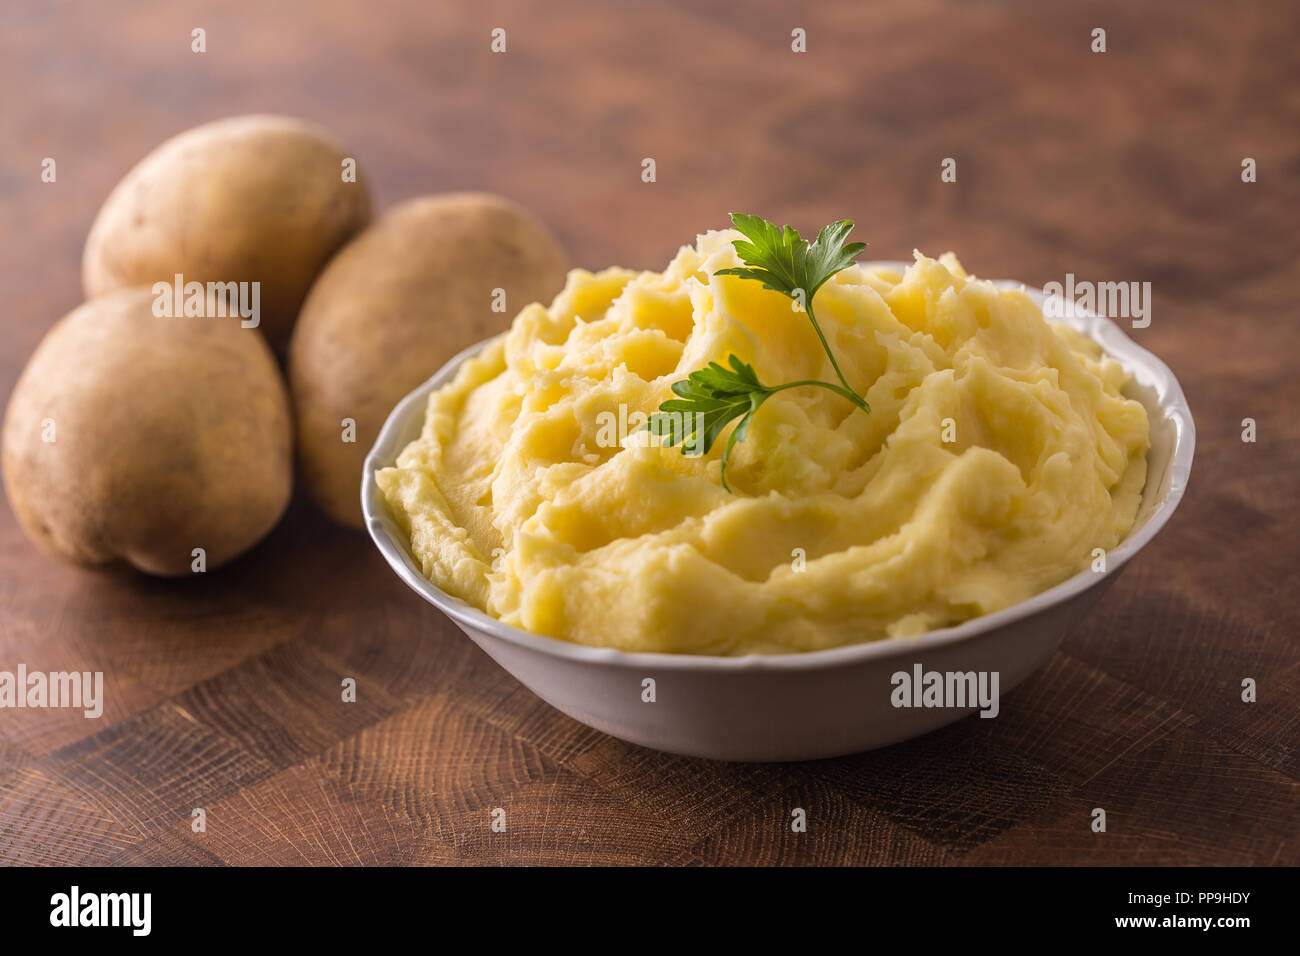 Mashed potatoes in bowl decorated with parsley herbs. - Stock Image